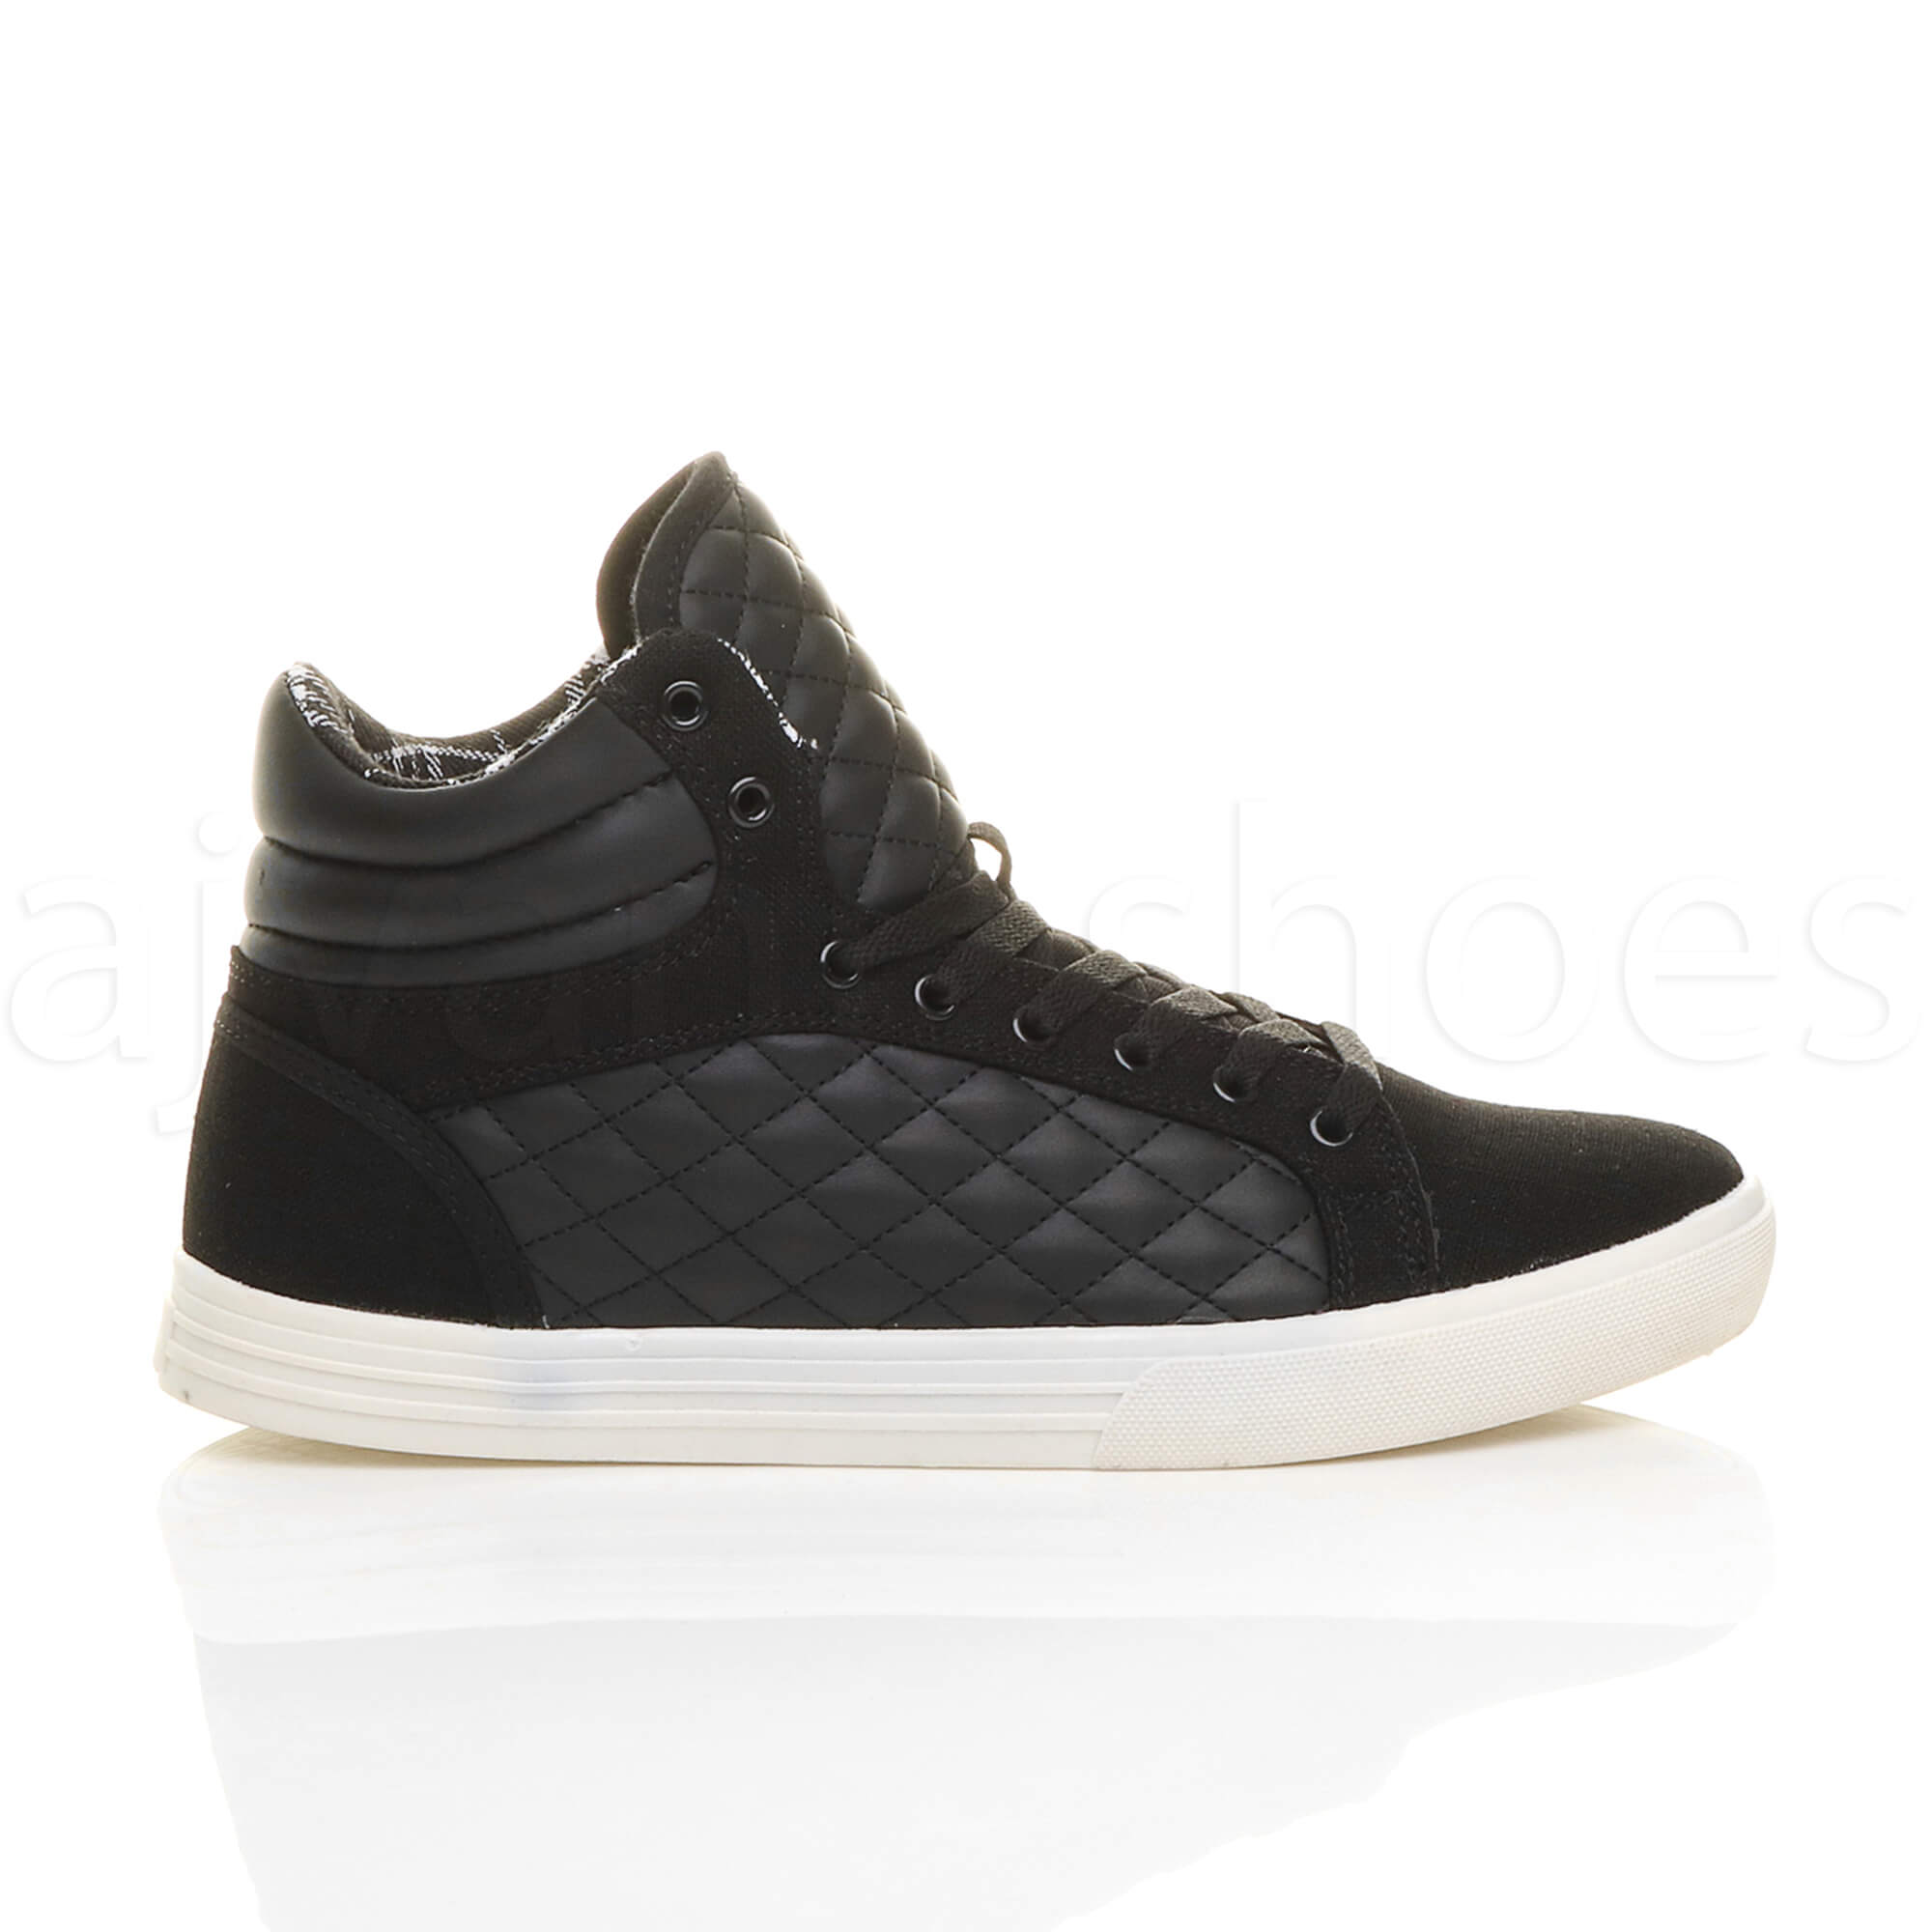 MENS-QUILTED-LACE-UP-FLAT-CASUAL-HI-HIGH-TOP-TRAINERS-SHOES-ANKLE-BOOTS-SIZE thumbnail 3